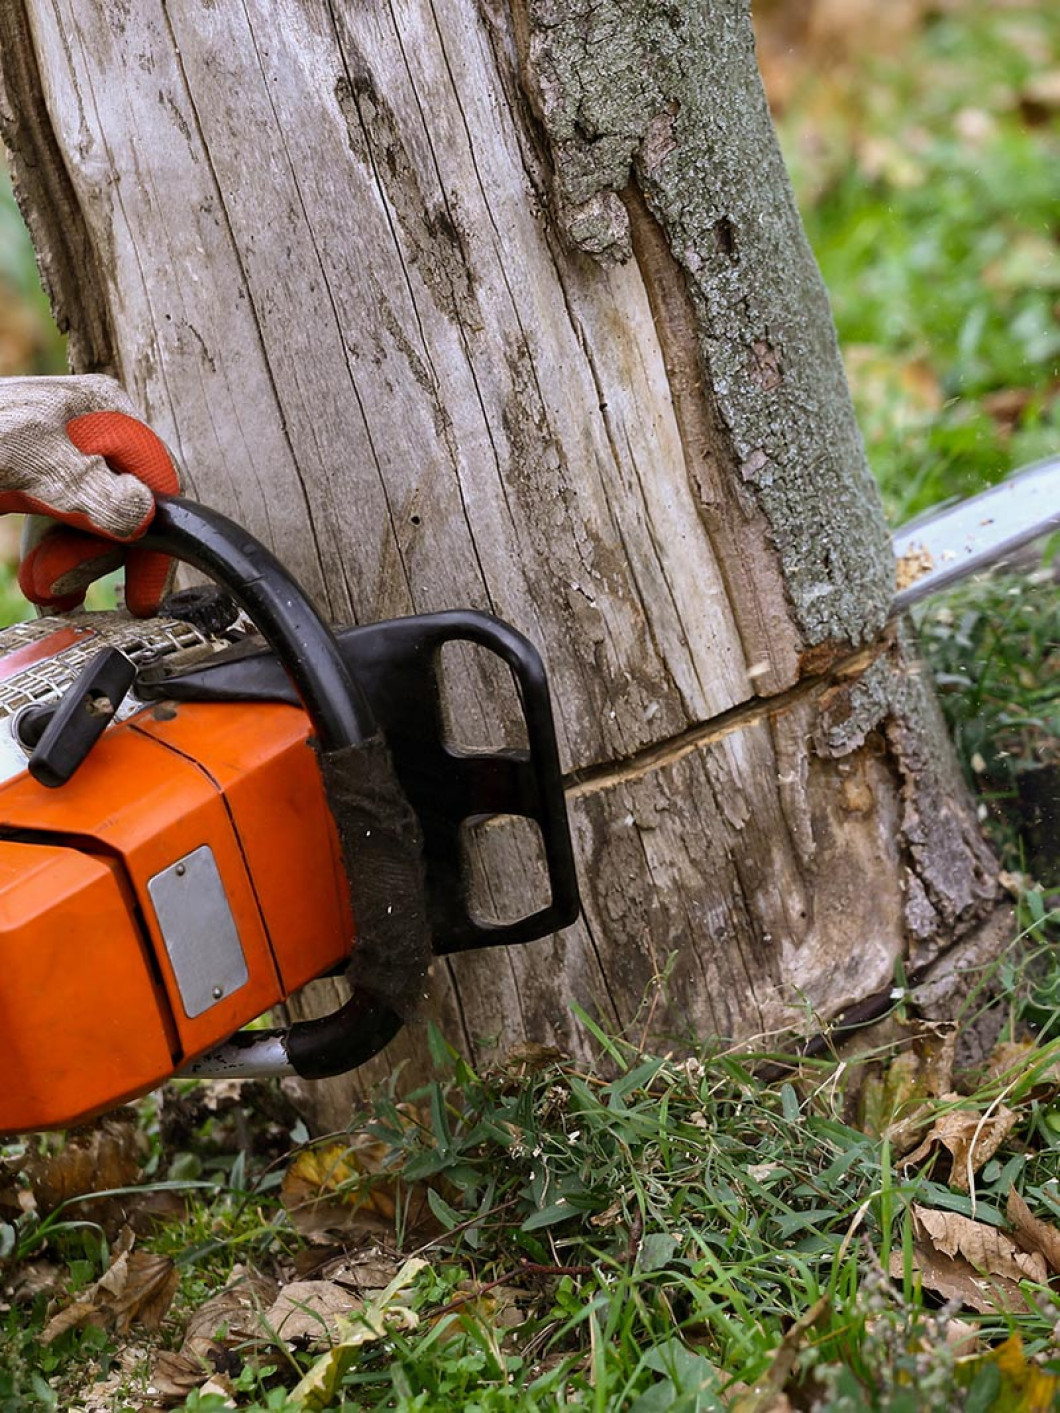 We're the right tree service for the job